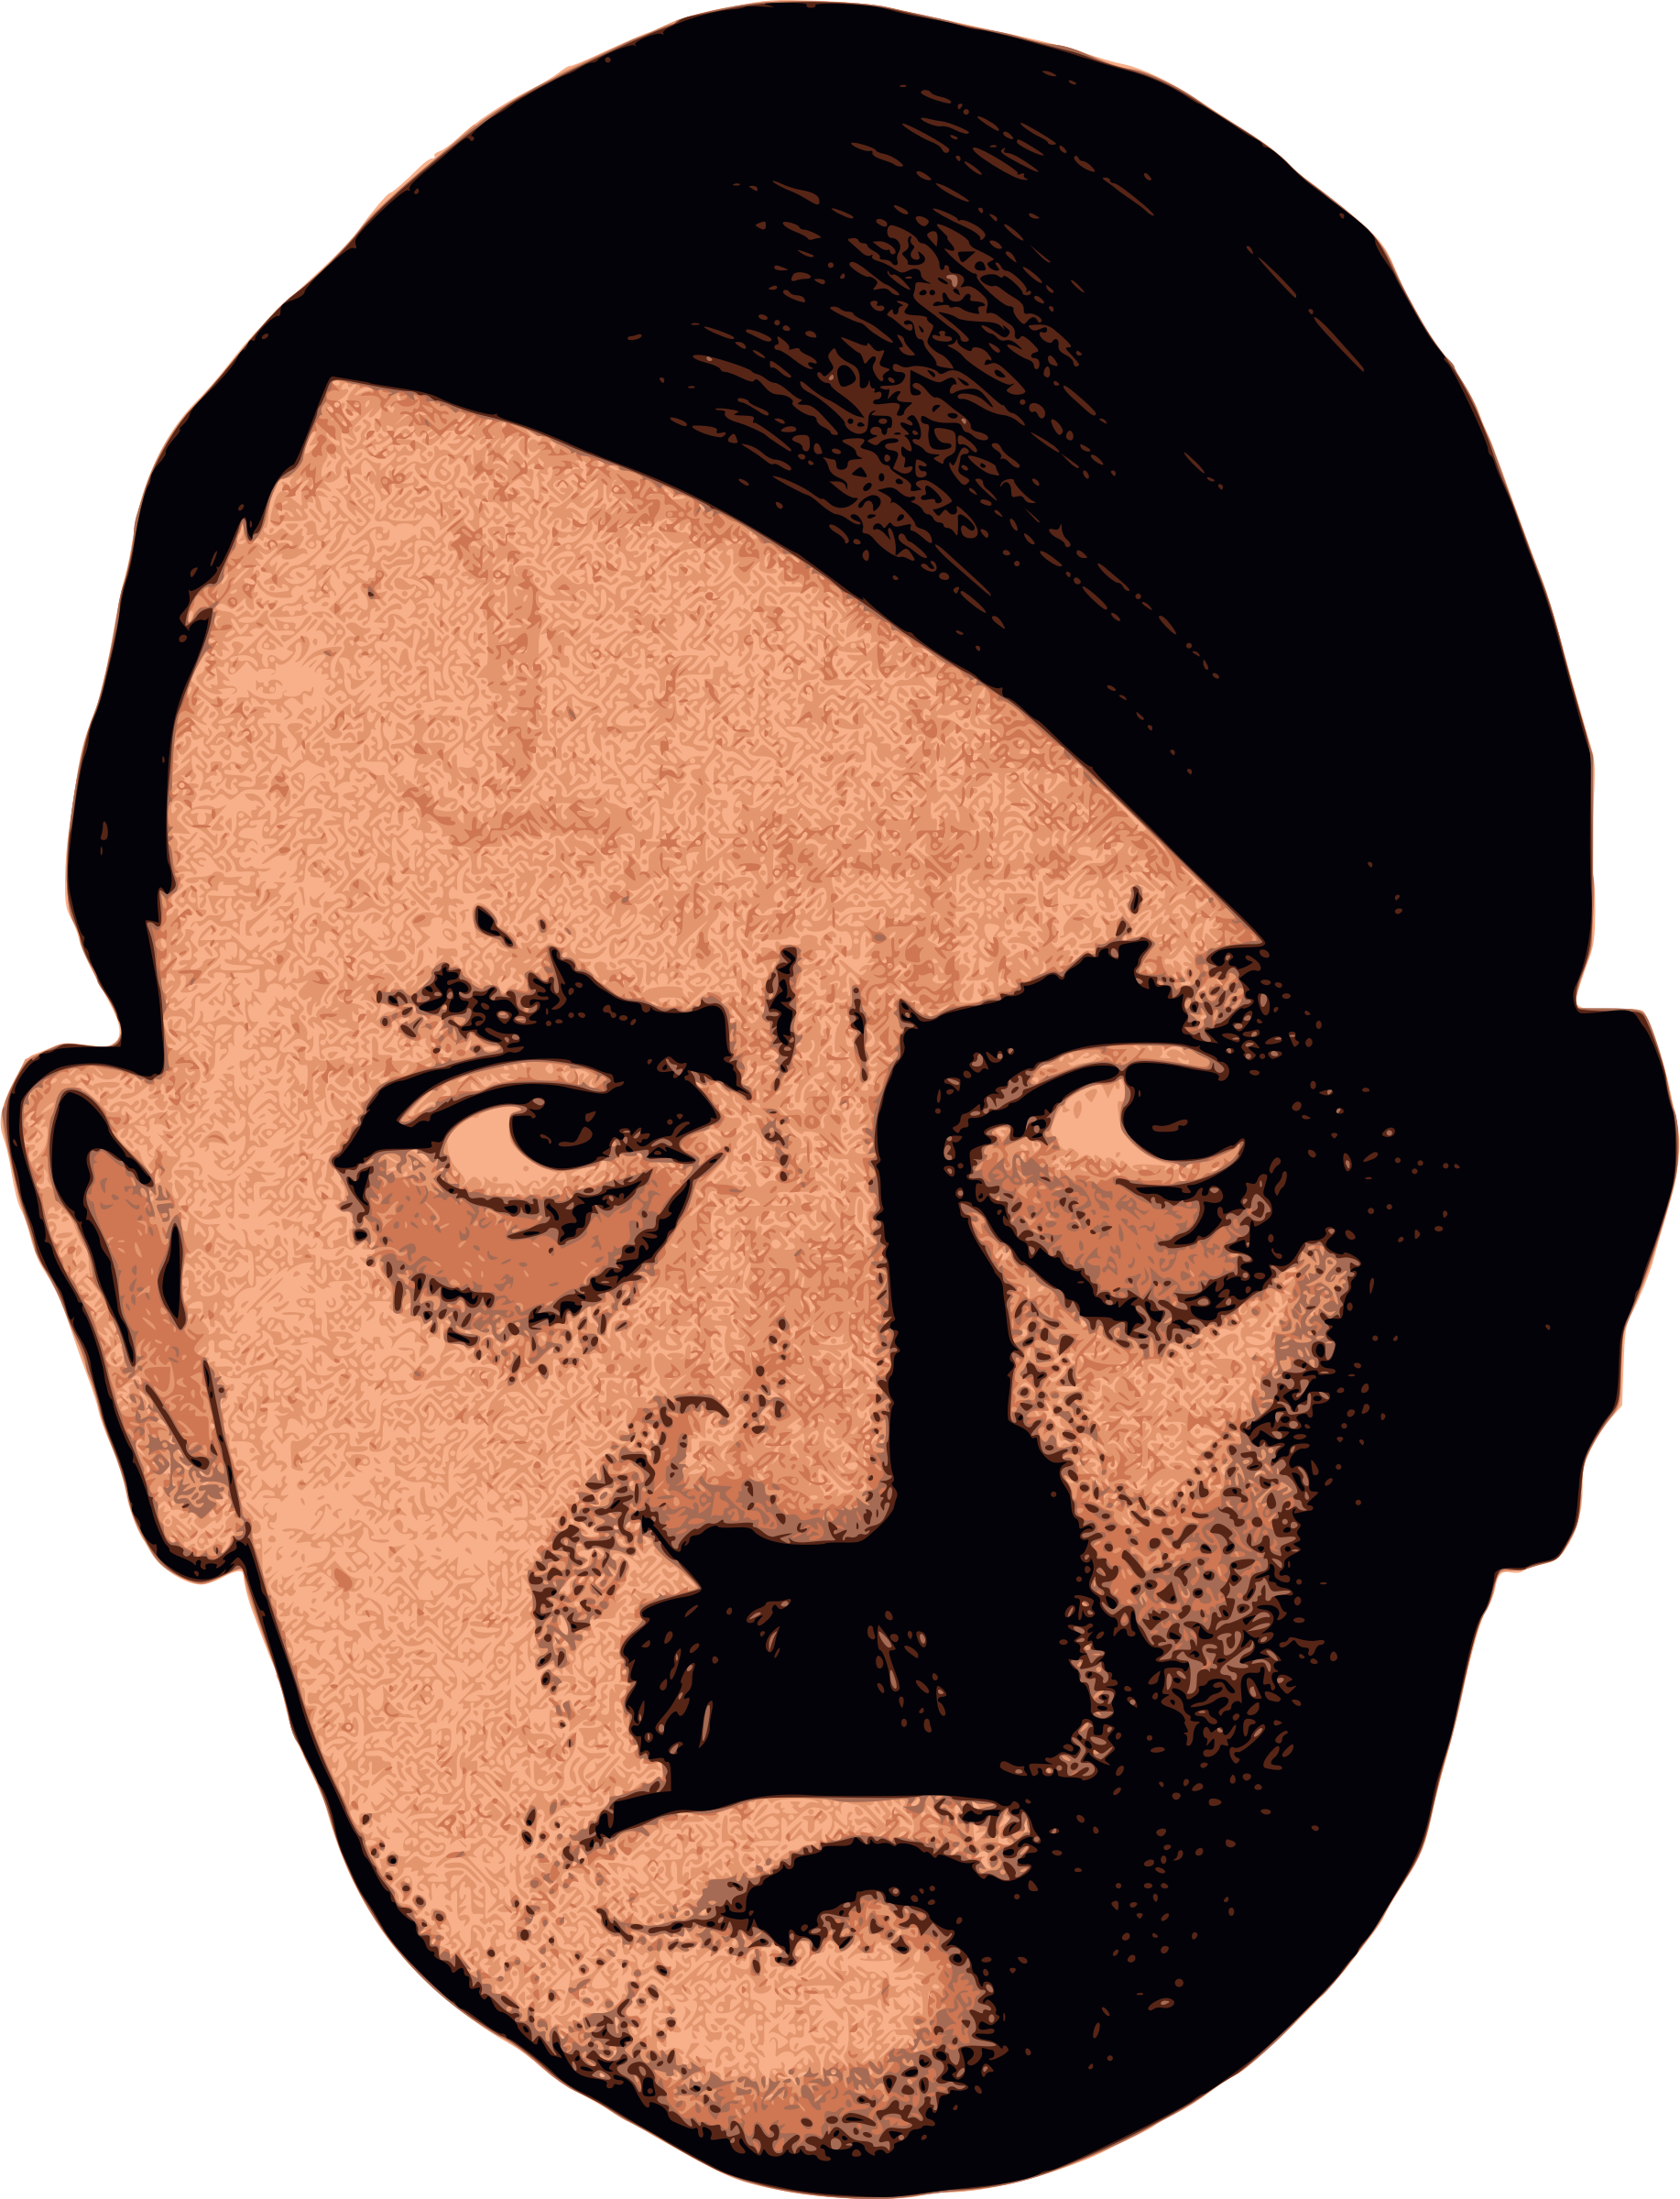 Adolf hitler face png